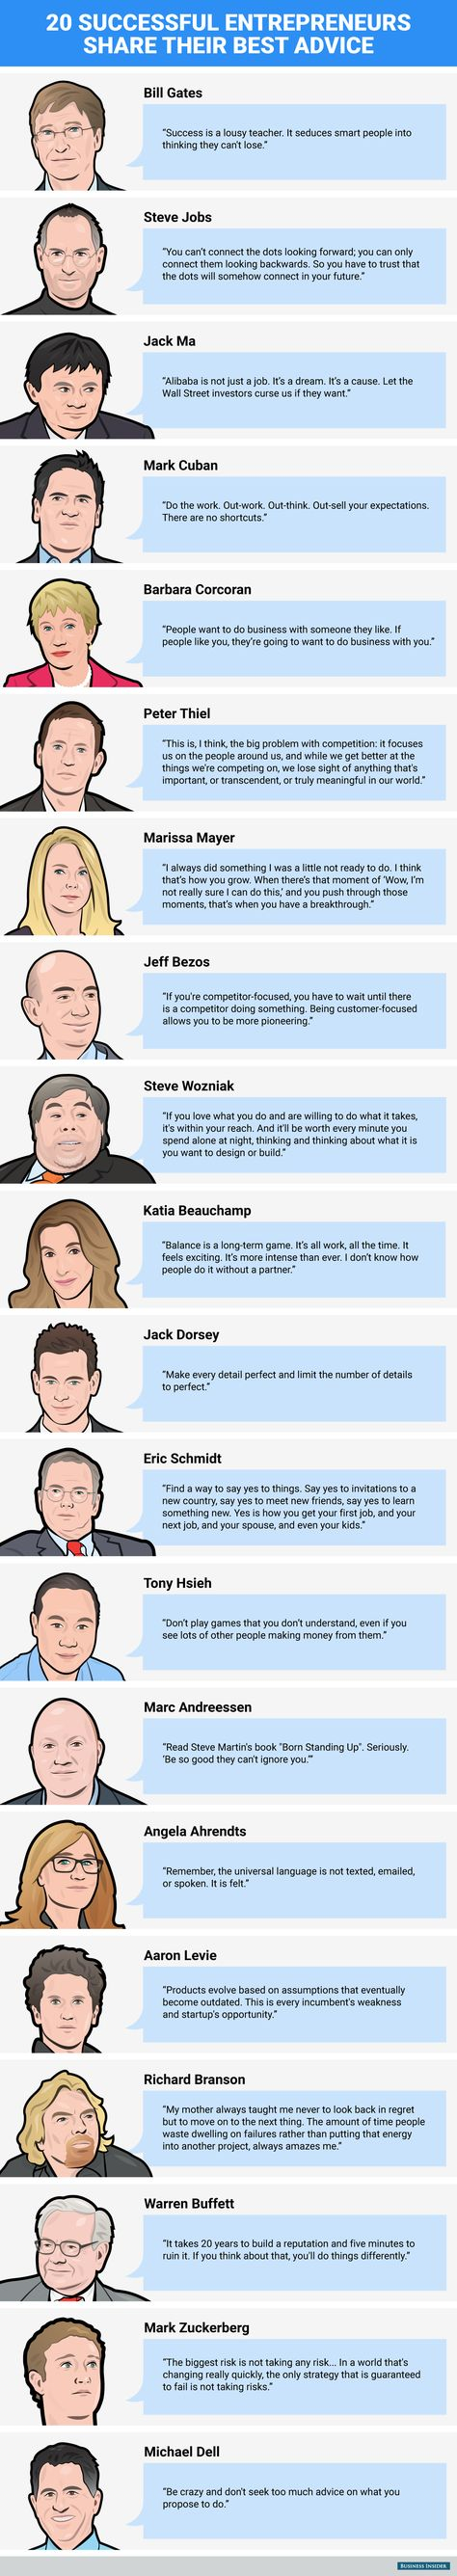 BI_Graphics_successful entrepreneurs best advice 2015 Some great motivation from well-known entrepreneurs! Find your motivation to move forward with your business idea.